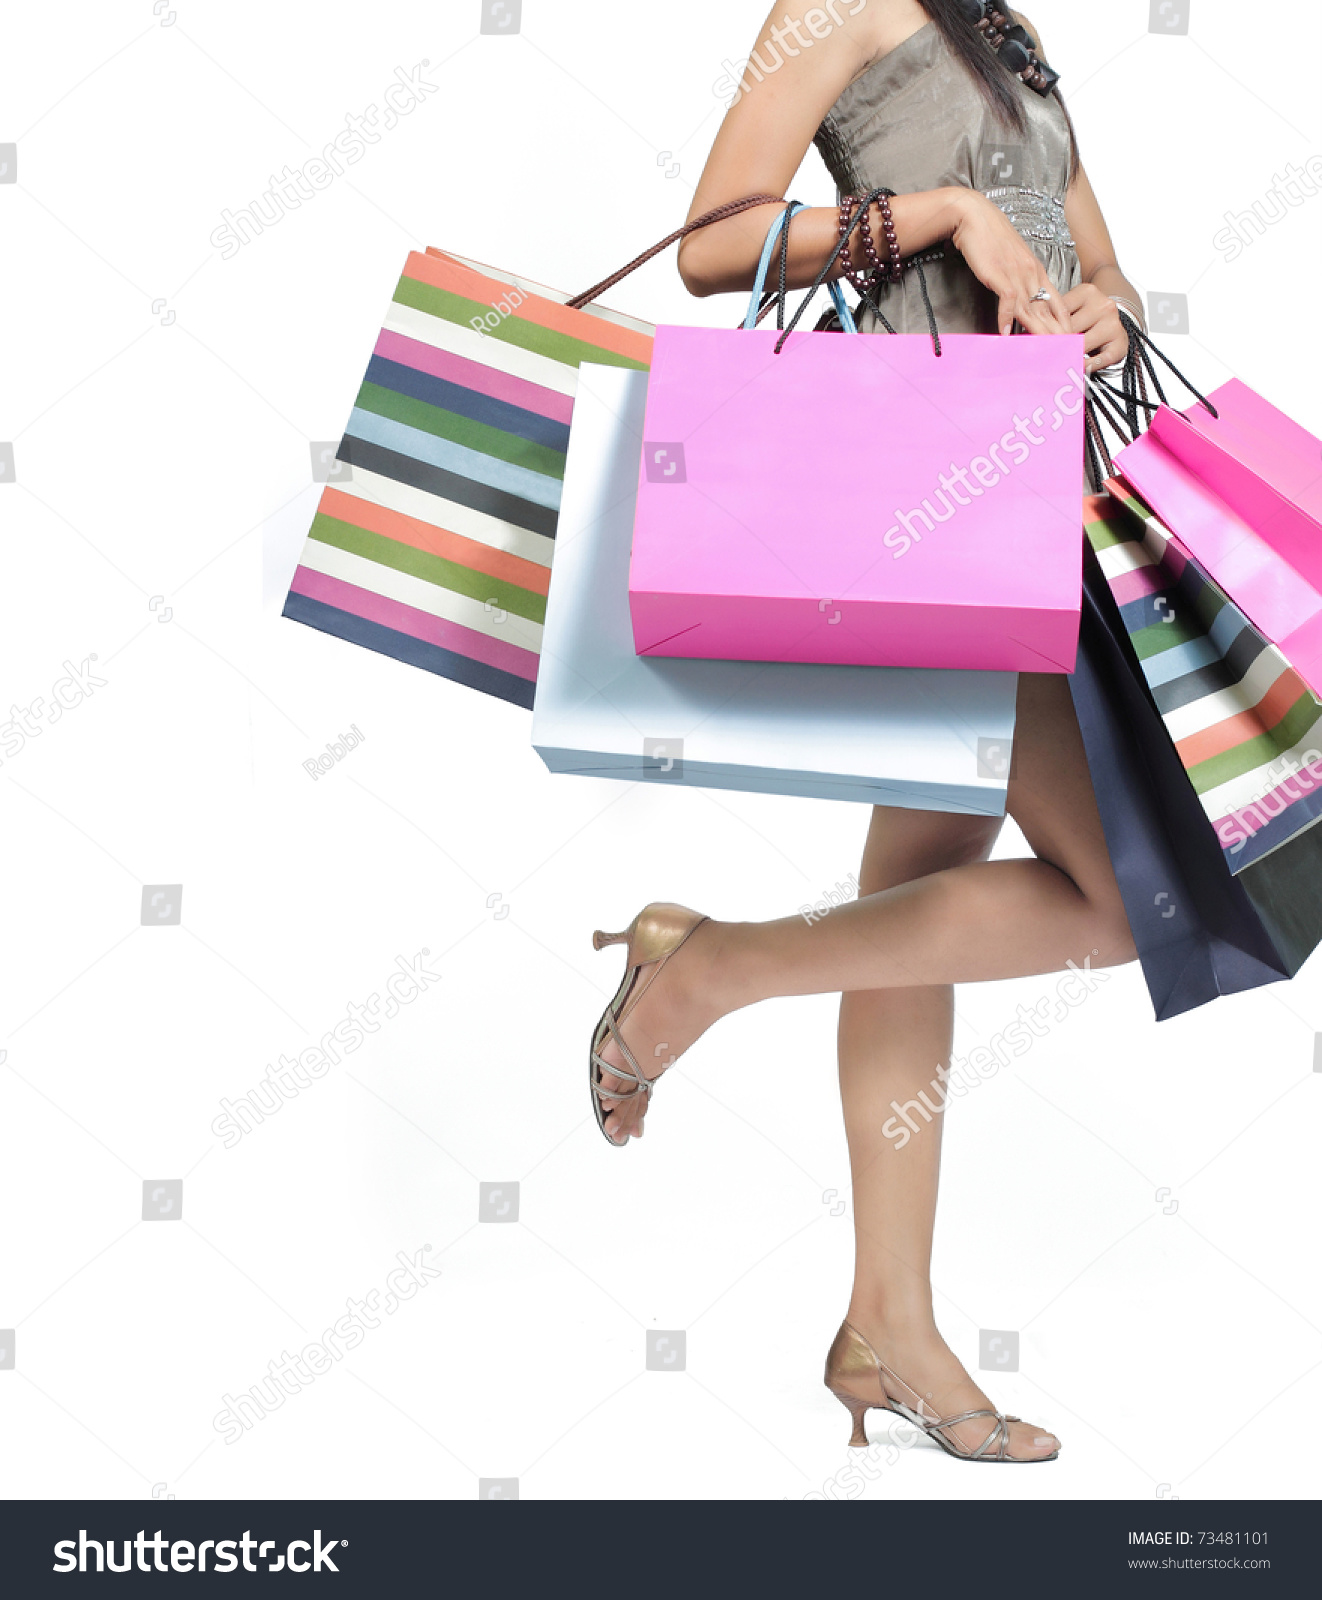 Beautiful Woman Shopping Bags Stock Photo 73481101 - Shutterstock